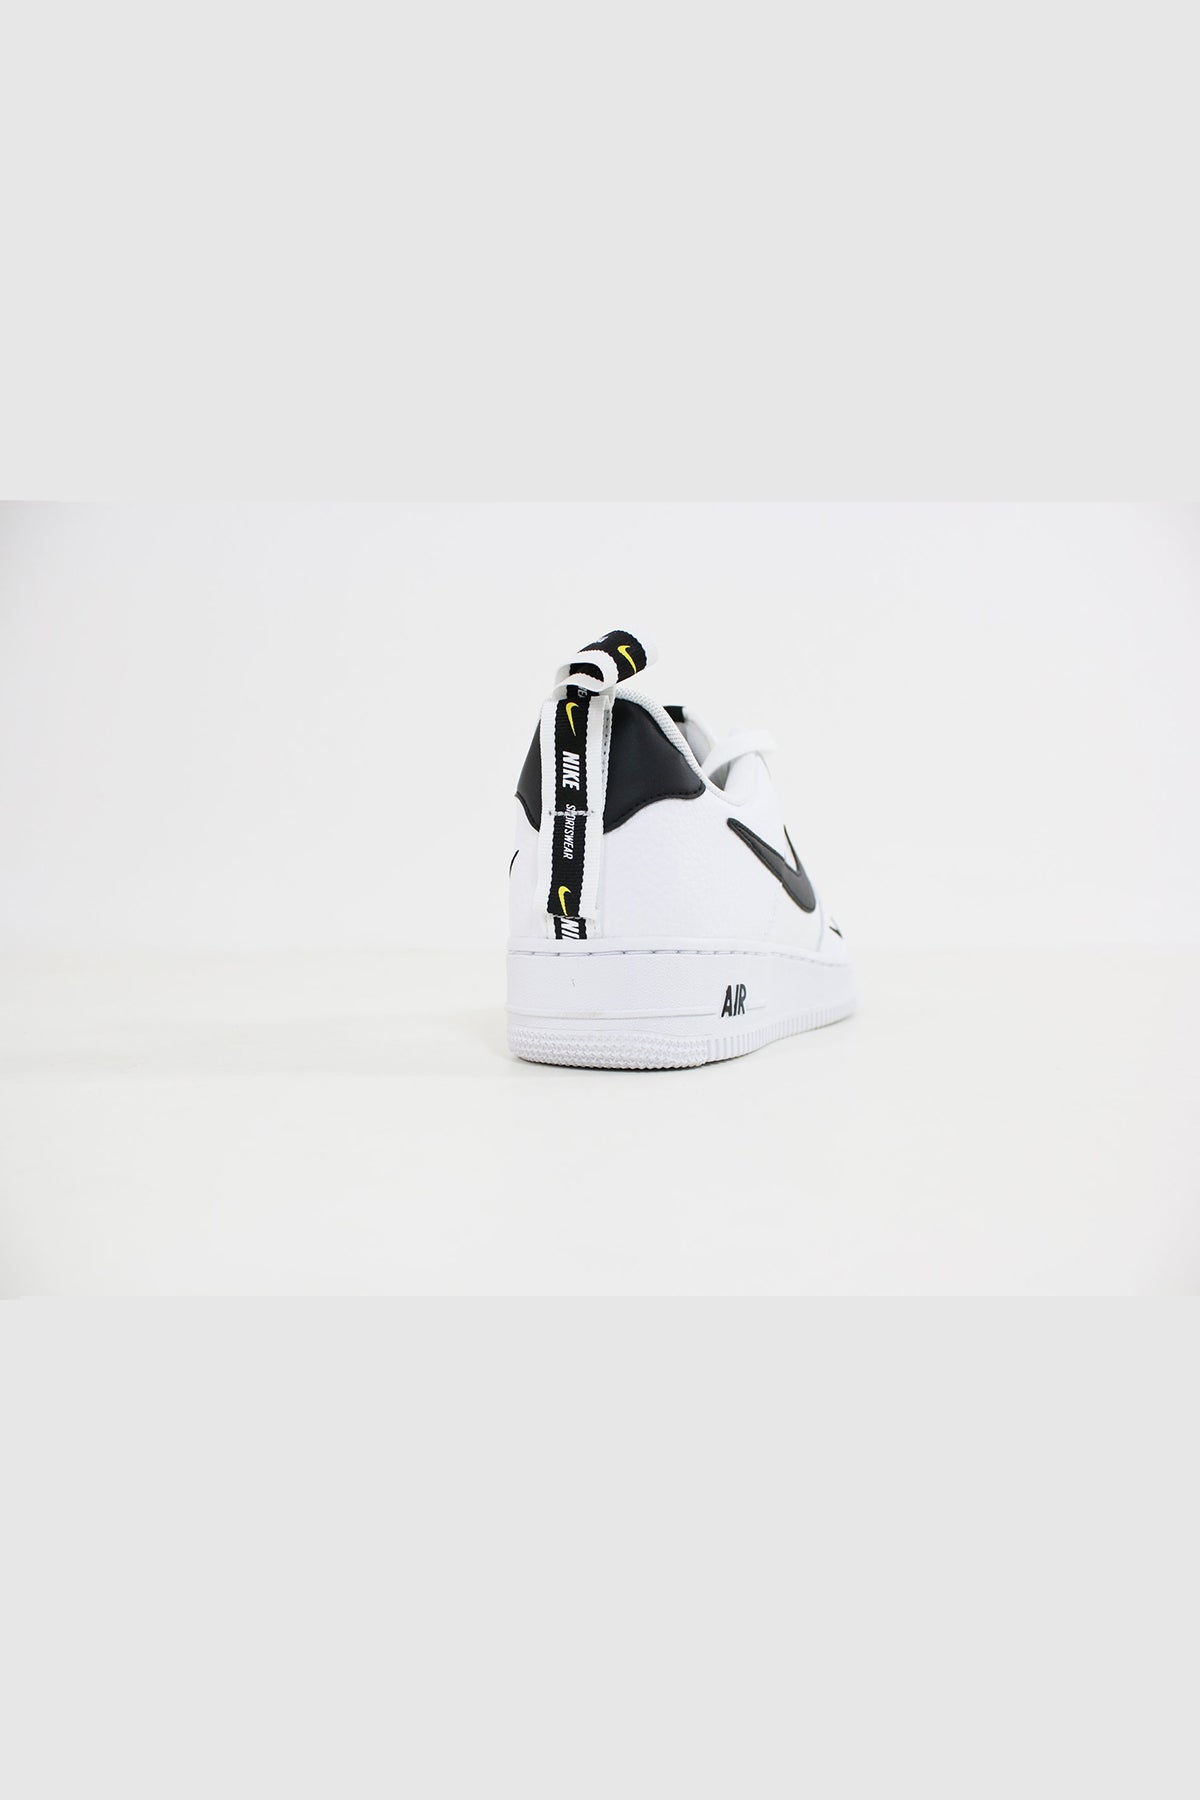 Nike - Air Force 1 '07 LV 8 Utlility (Black/ White Black Tour Yellow) AJ7747-100